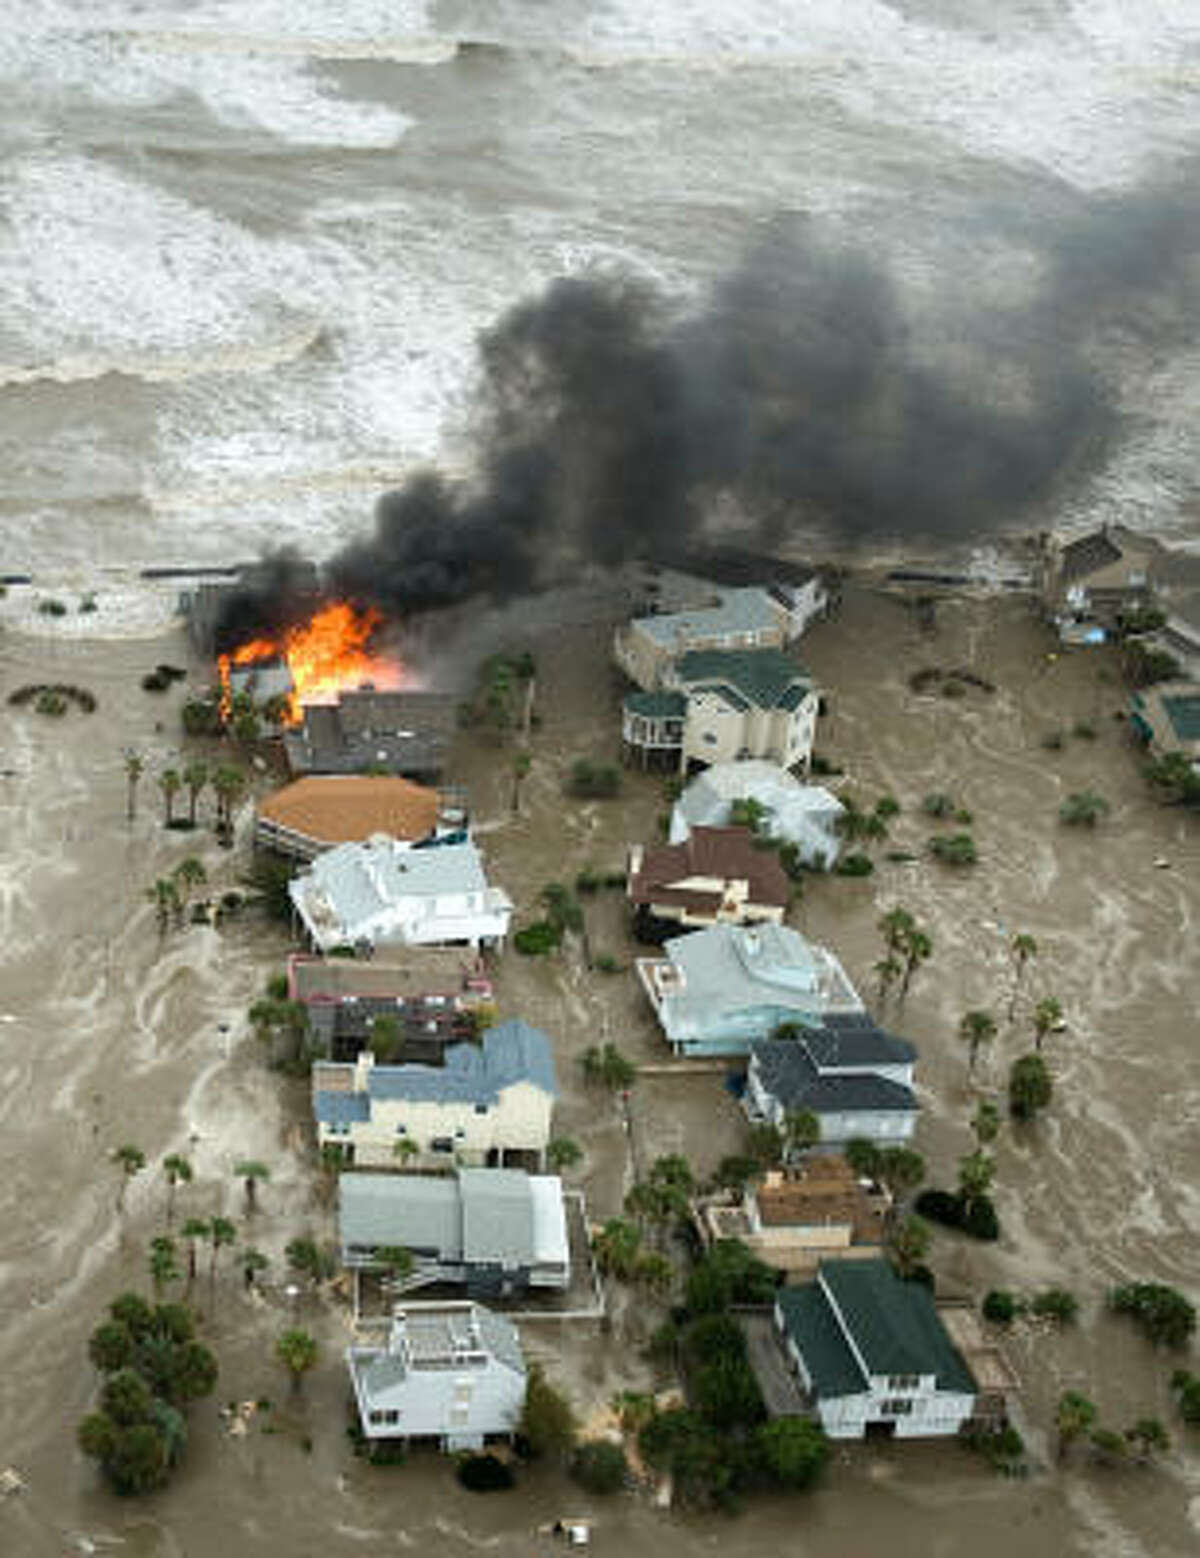 A house is engulfed in flames as floodwaters and crashing waves inundated beach homes on Galveston Island as Hurricane Ike approaches the Texas Gulf Coast on Friday.